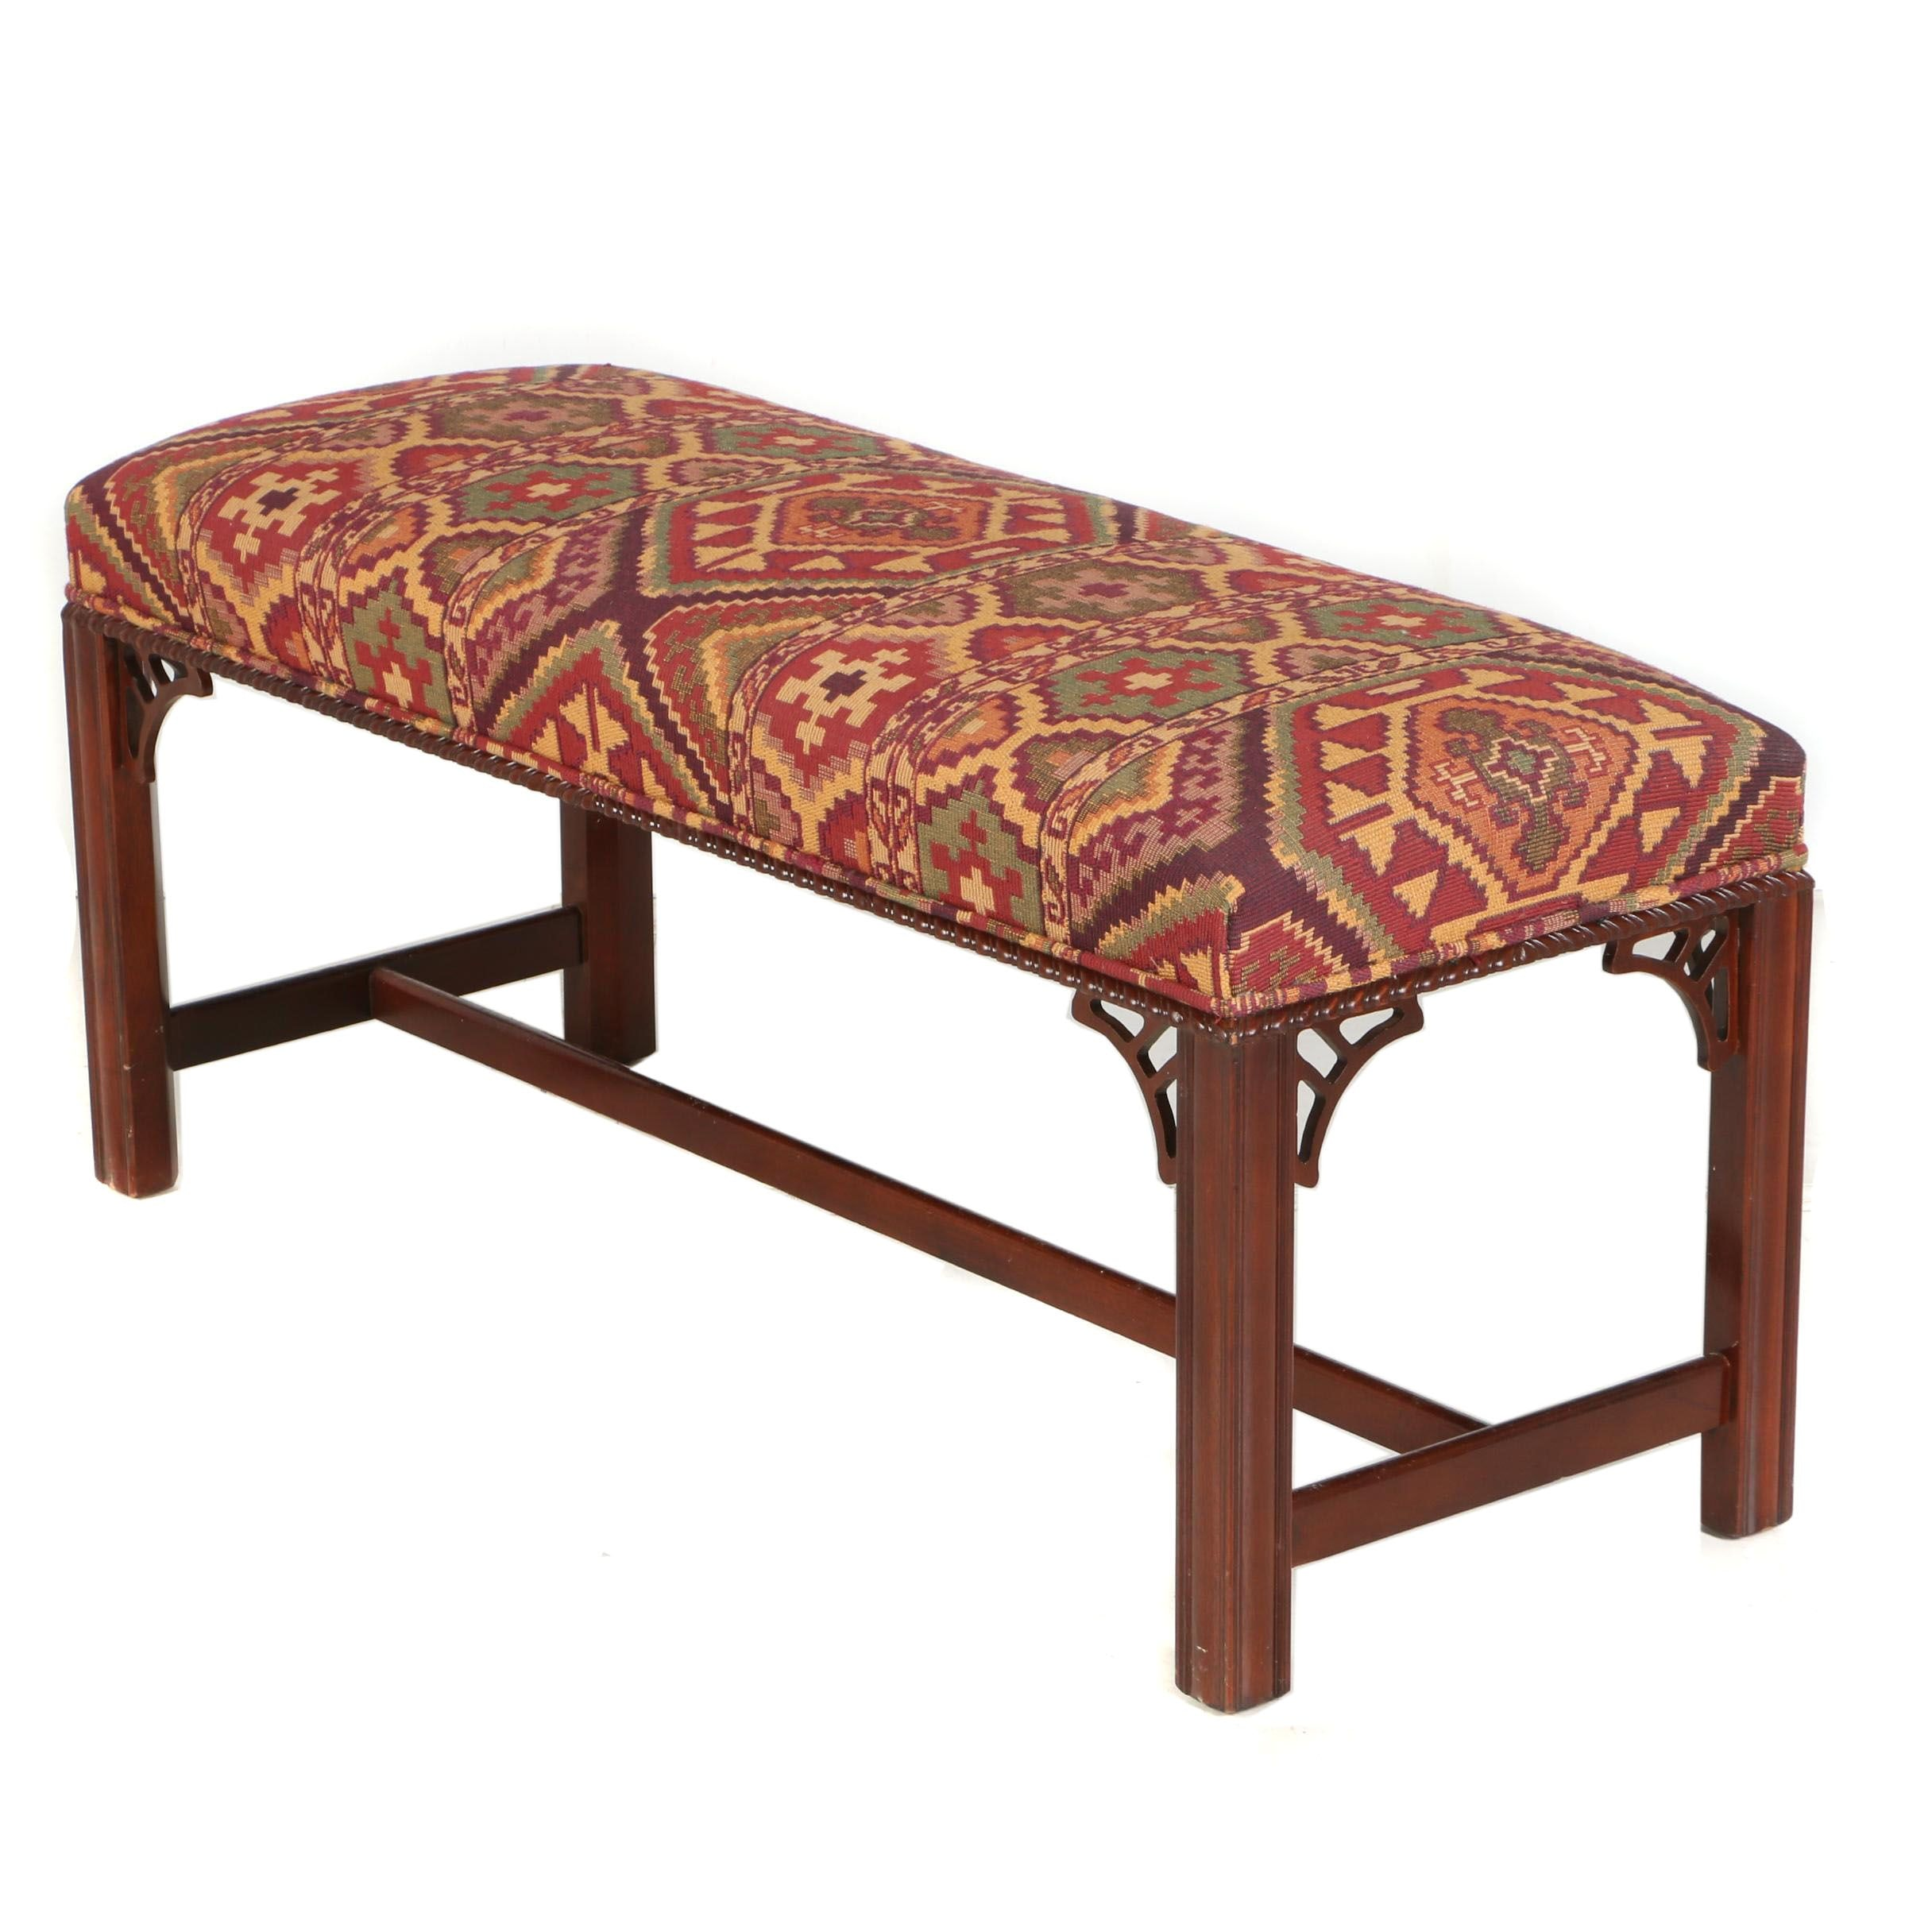 George III Style Mahogany Bench by Hickory Chair, 20th Century